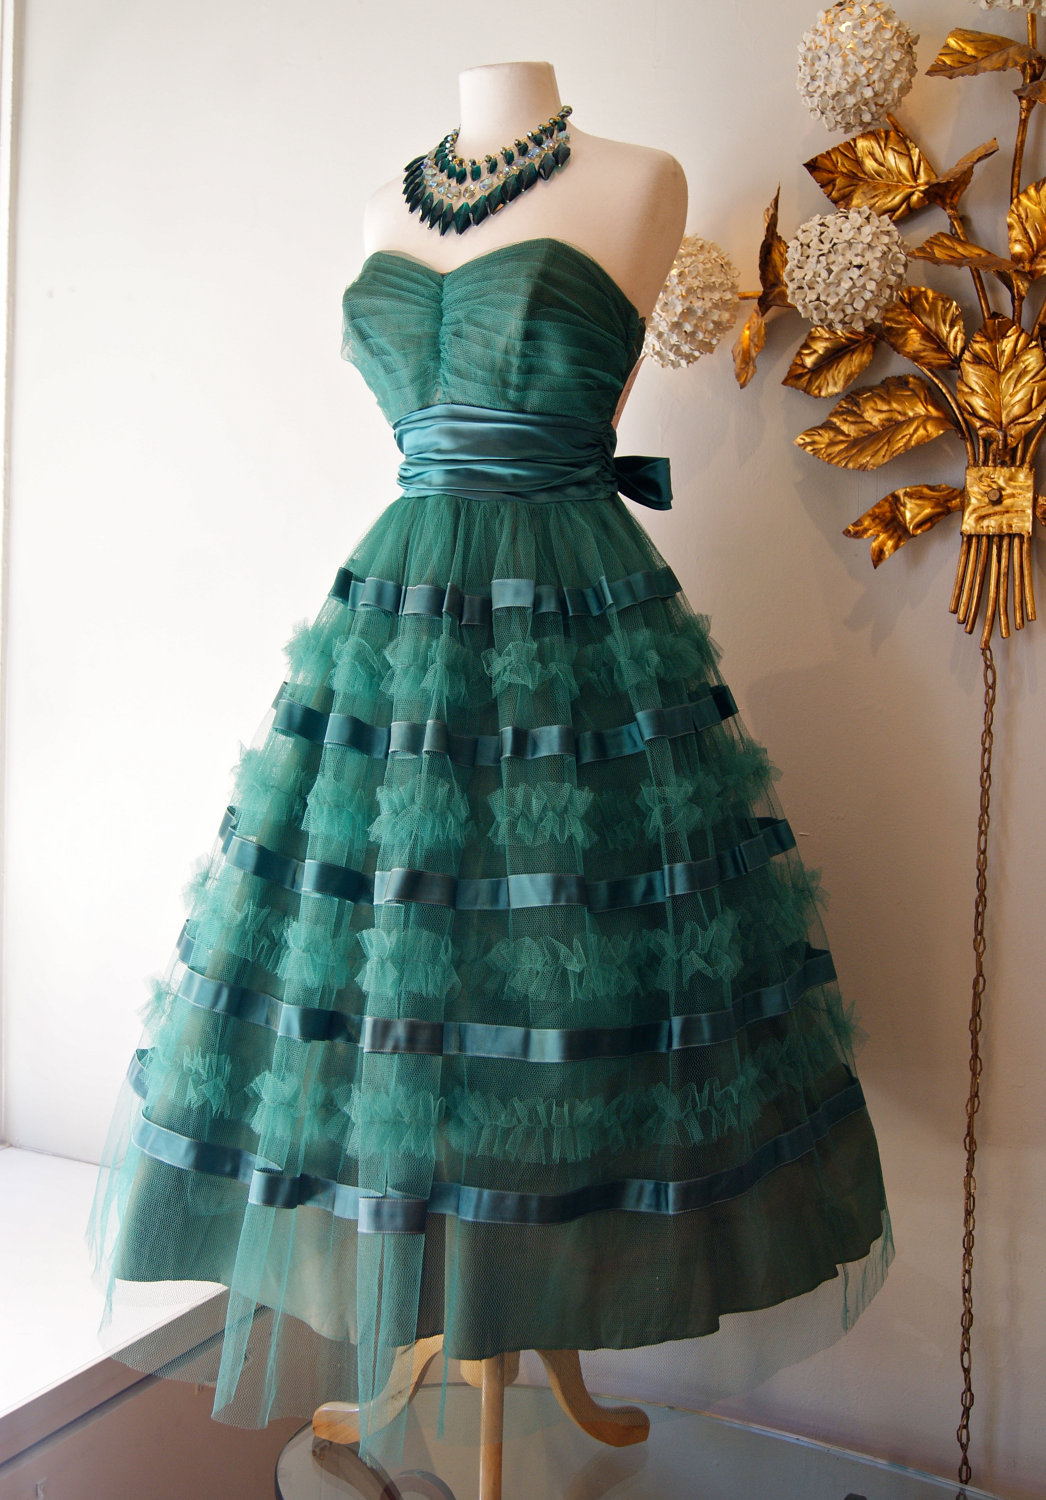 Vintage 1950s Emerald Green Tulle and Ruffle Cupcake Dress with Bow ...